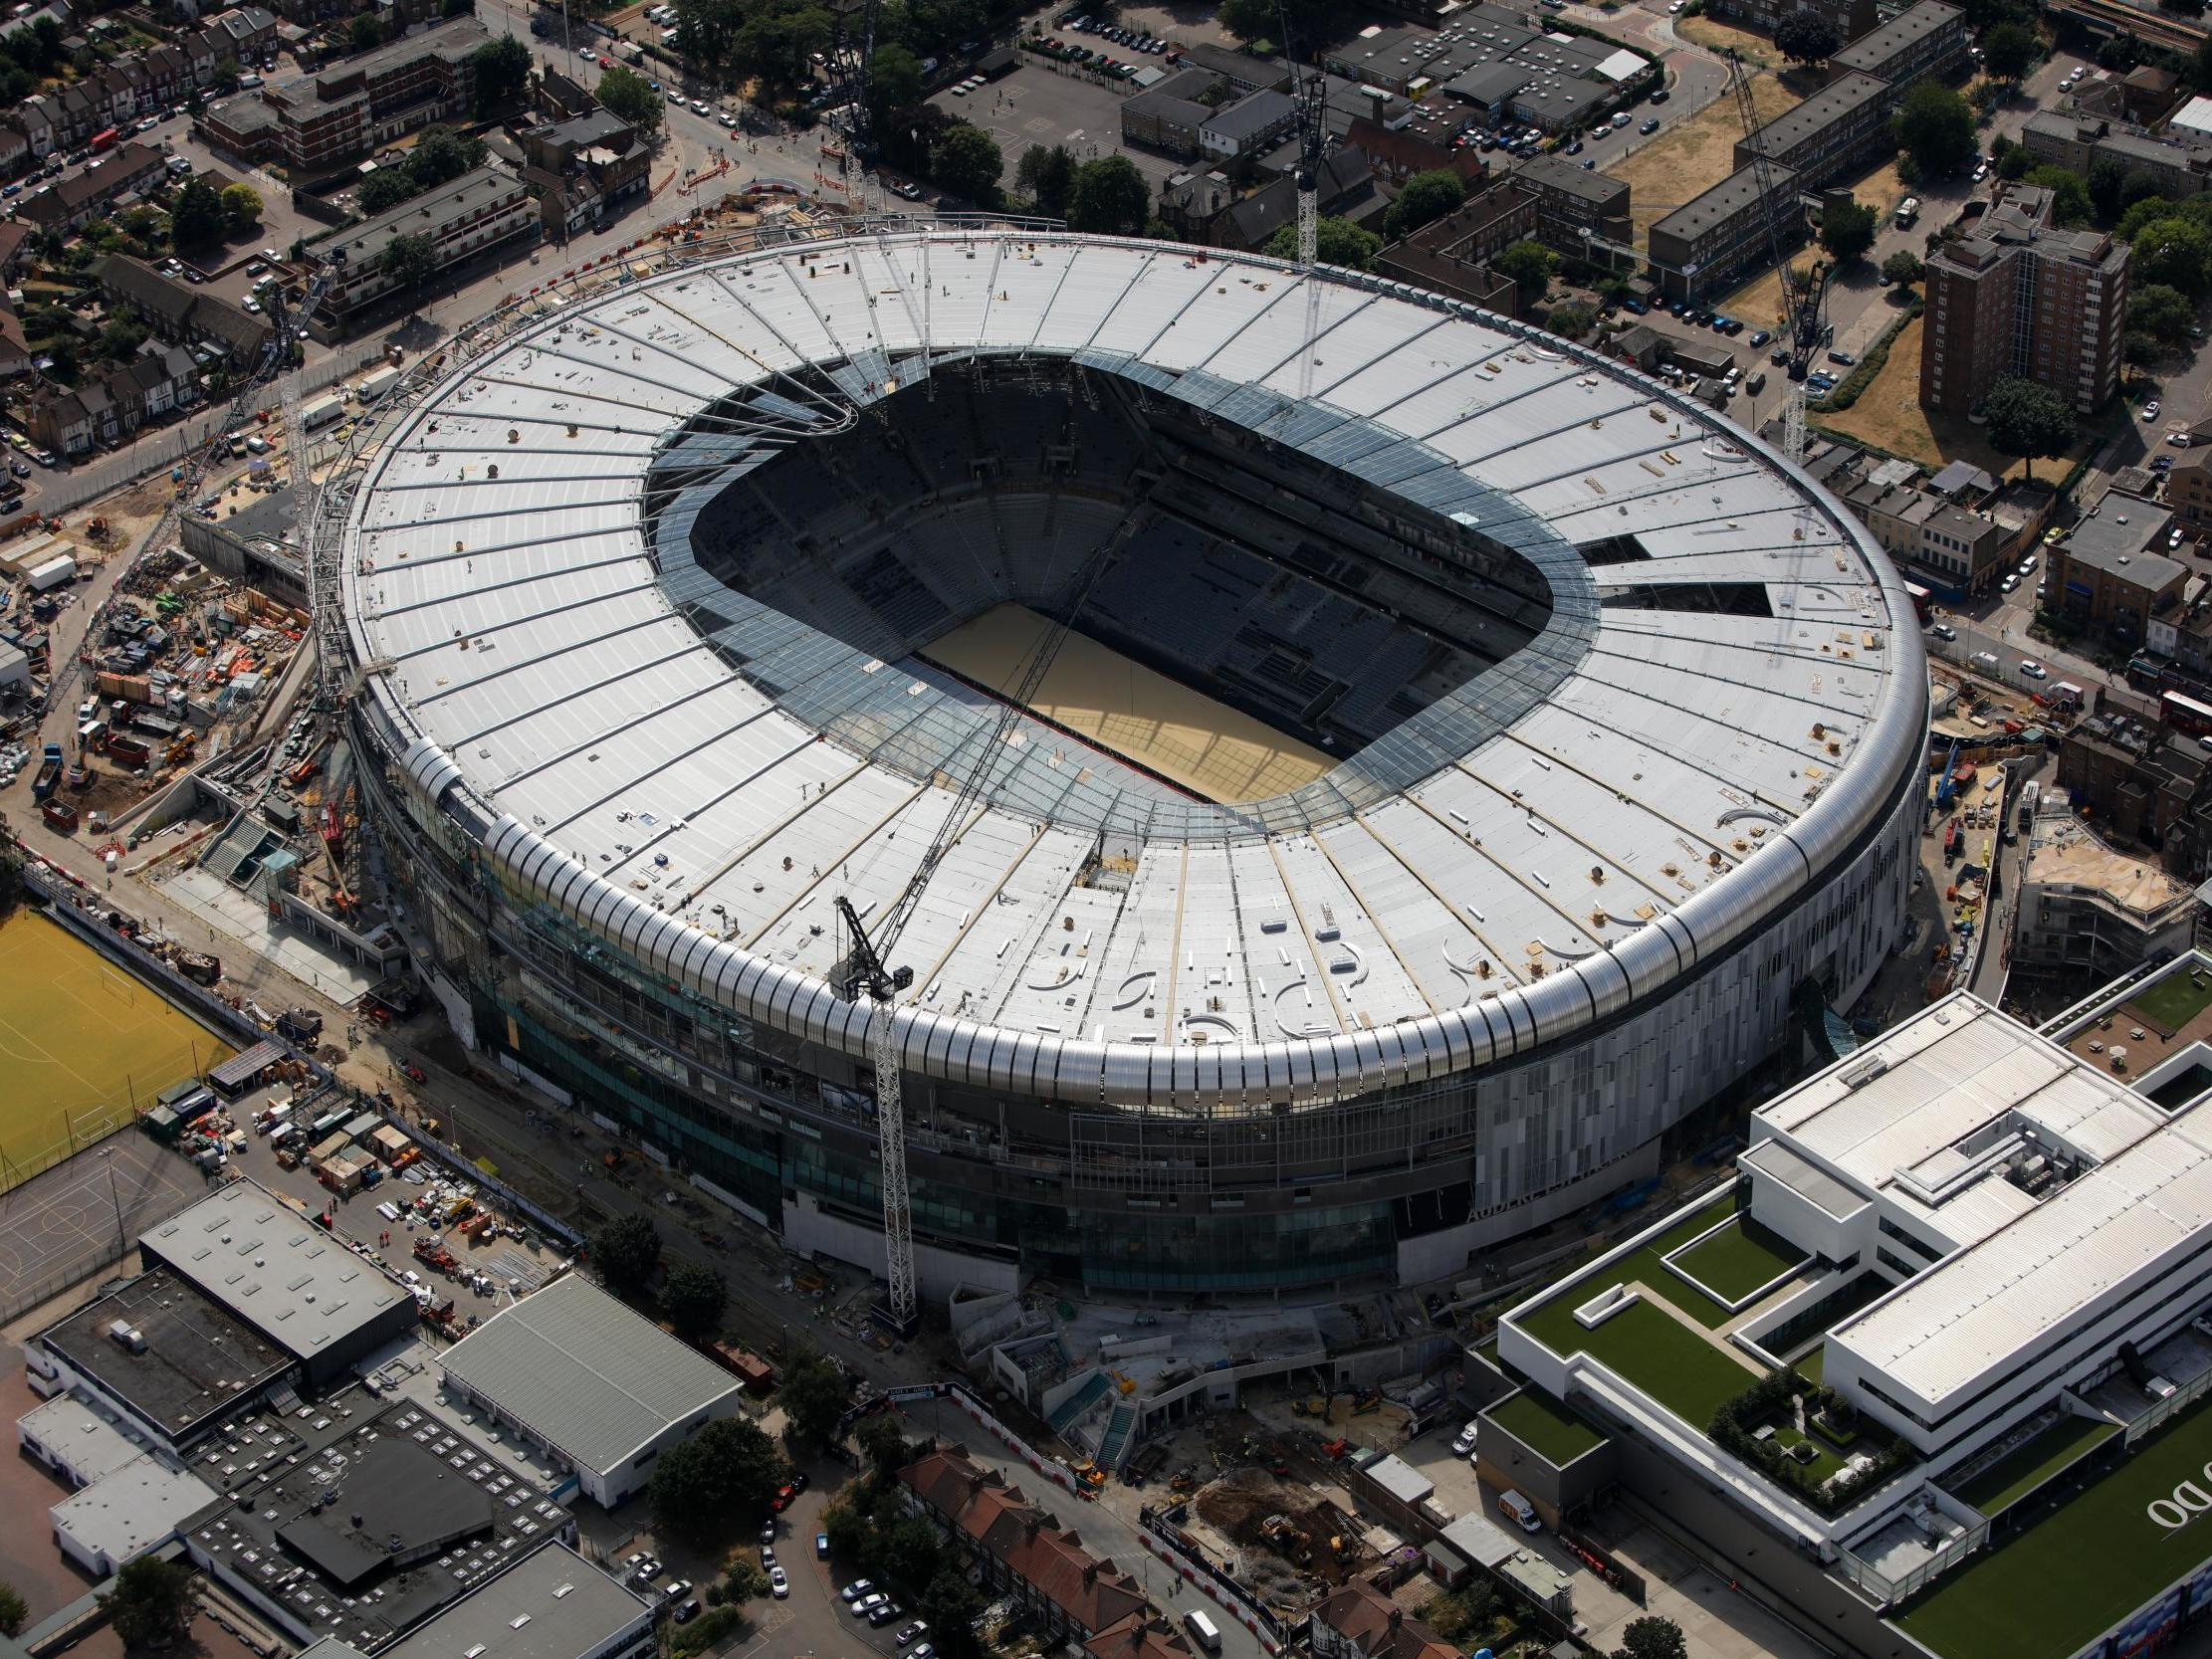 Tottenham delay new White Hart Lane opening due to safety concerns, moving two more games to Wembley